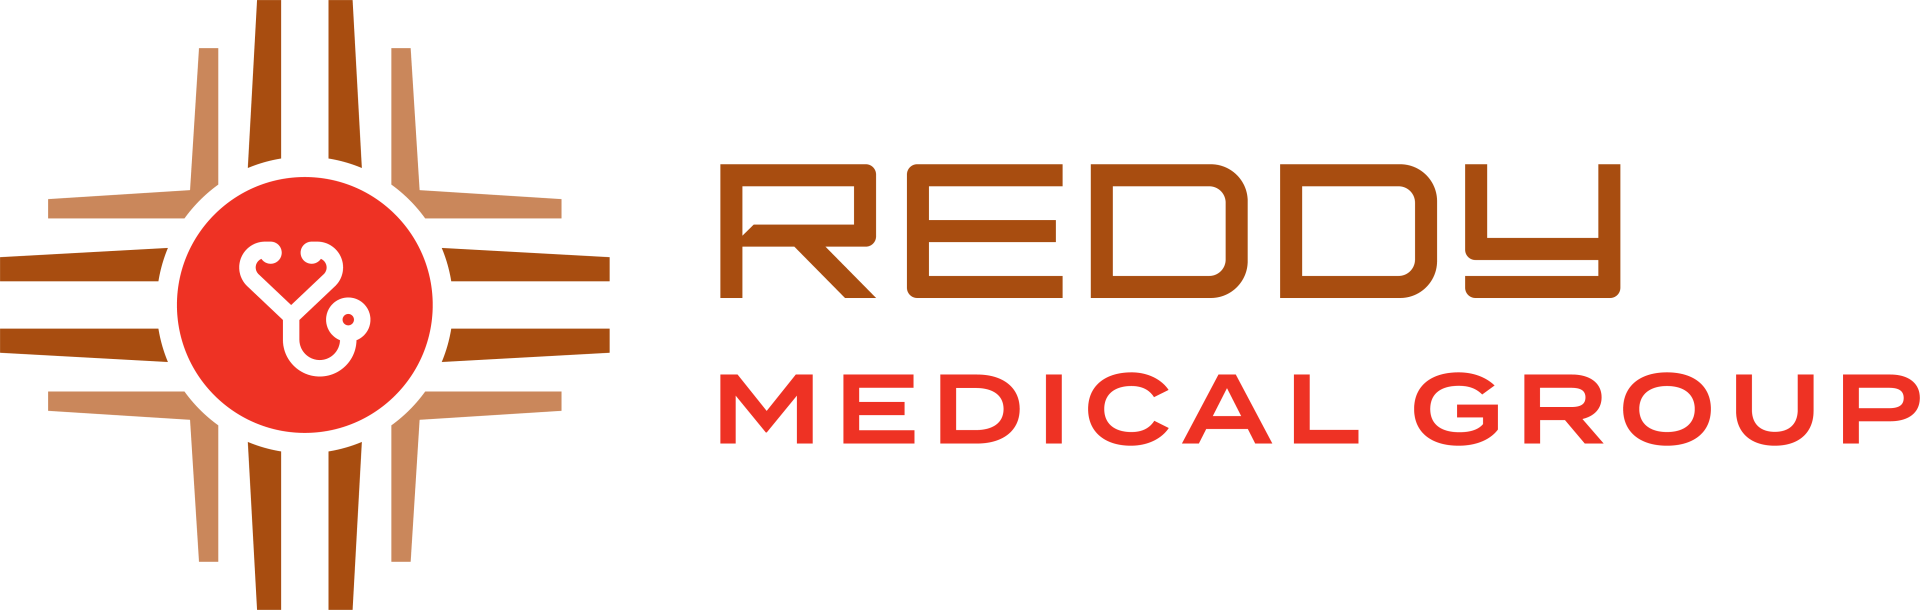 Urgent Care Center in Georgia - Reddy Medical Group